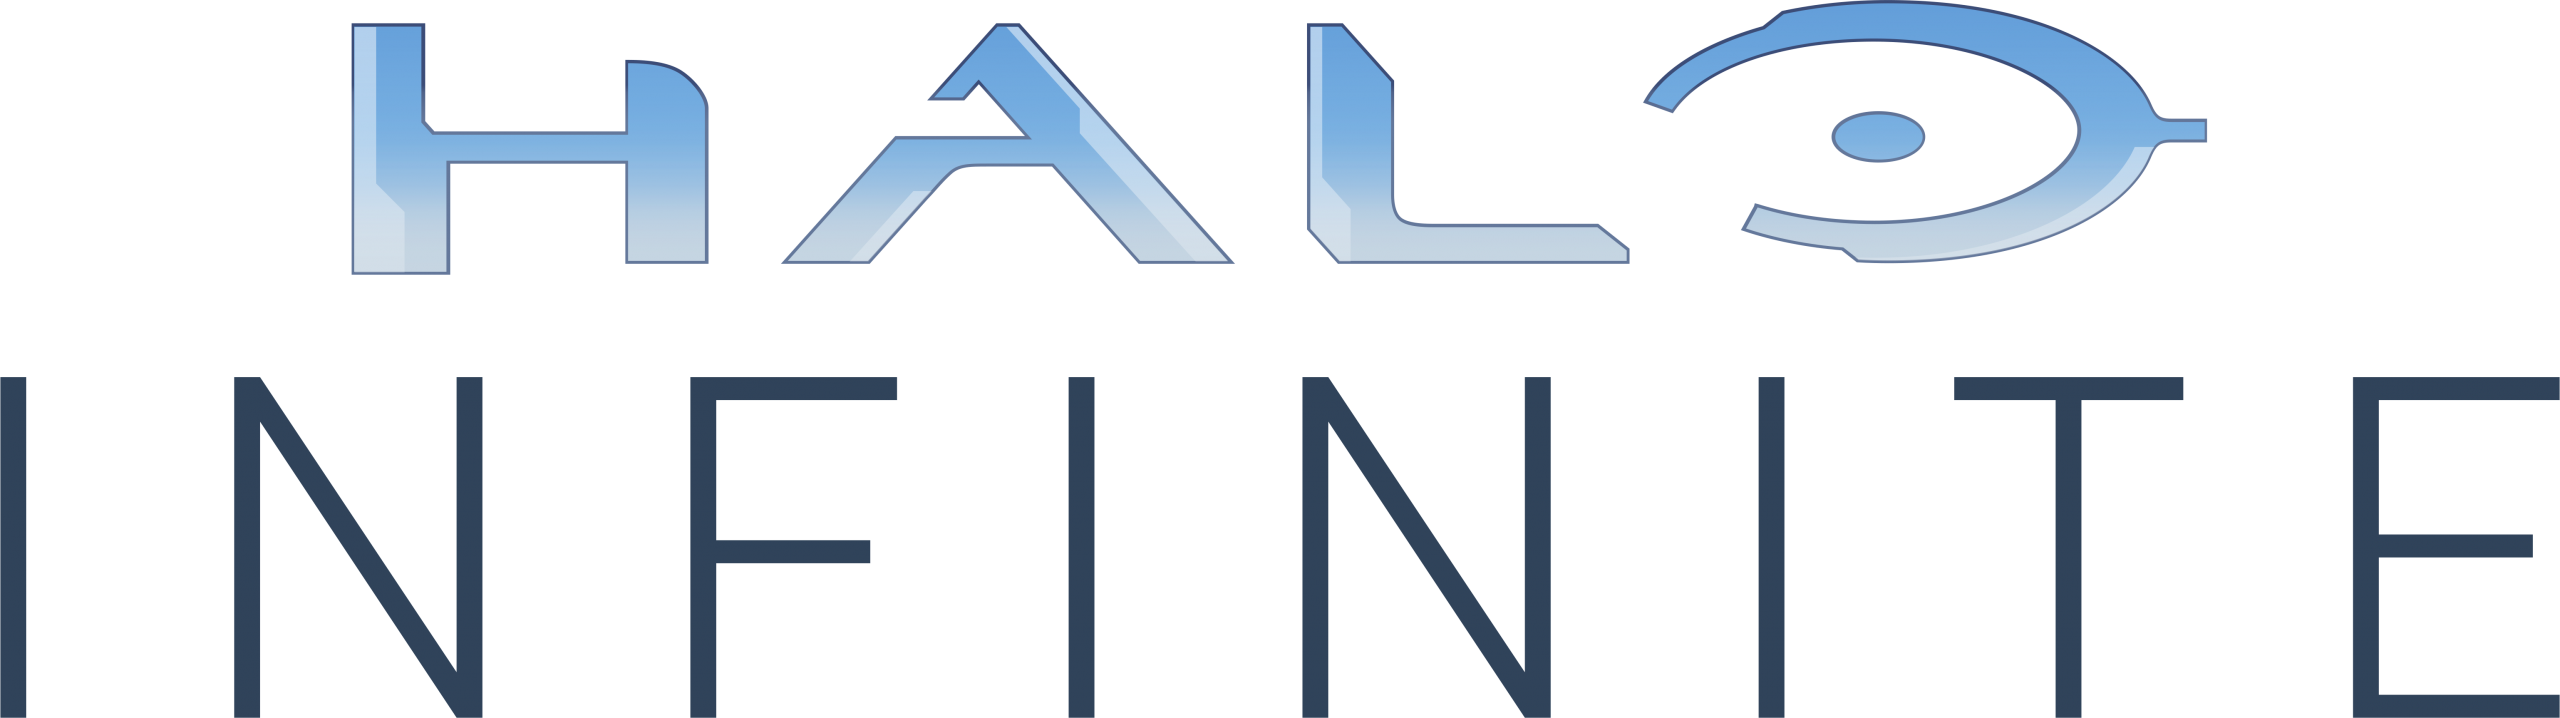 Halo Infinite: Most Expensive Game of All Time - Next Generation - Is it Worth 500 million dollars? 1 Top10.Digital